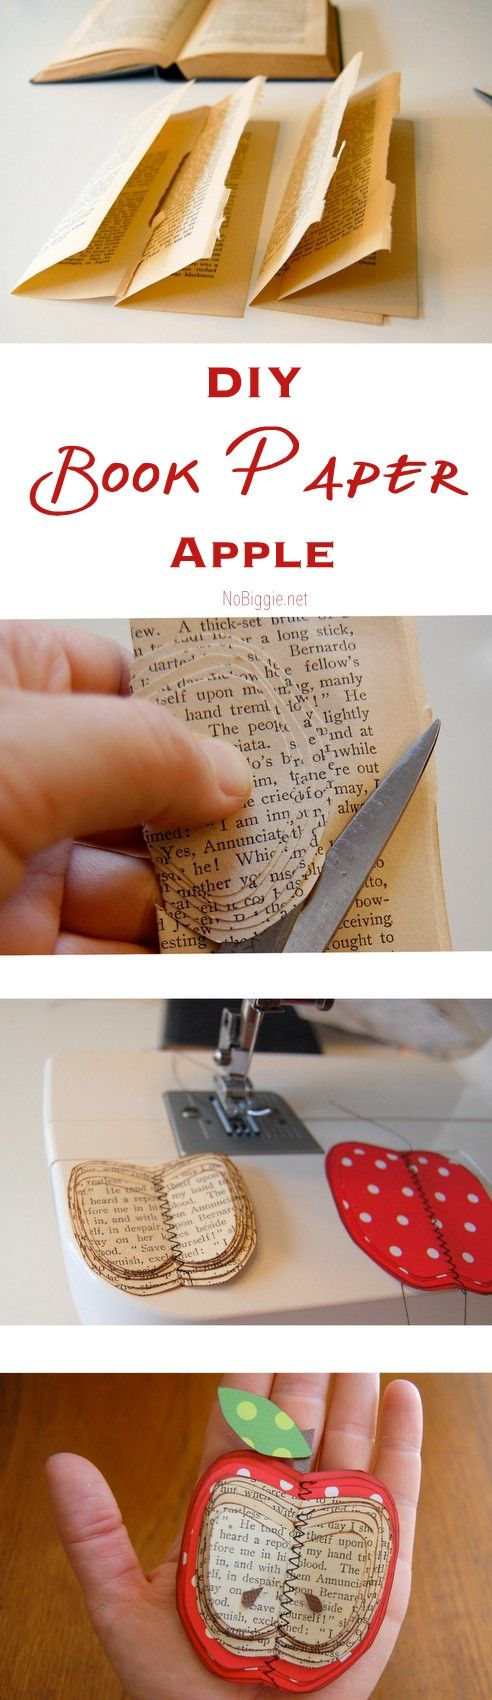 Book Paper Apple #bookspapersandthings